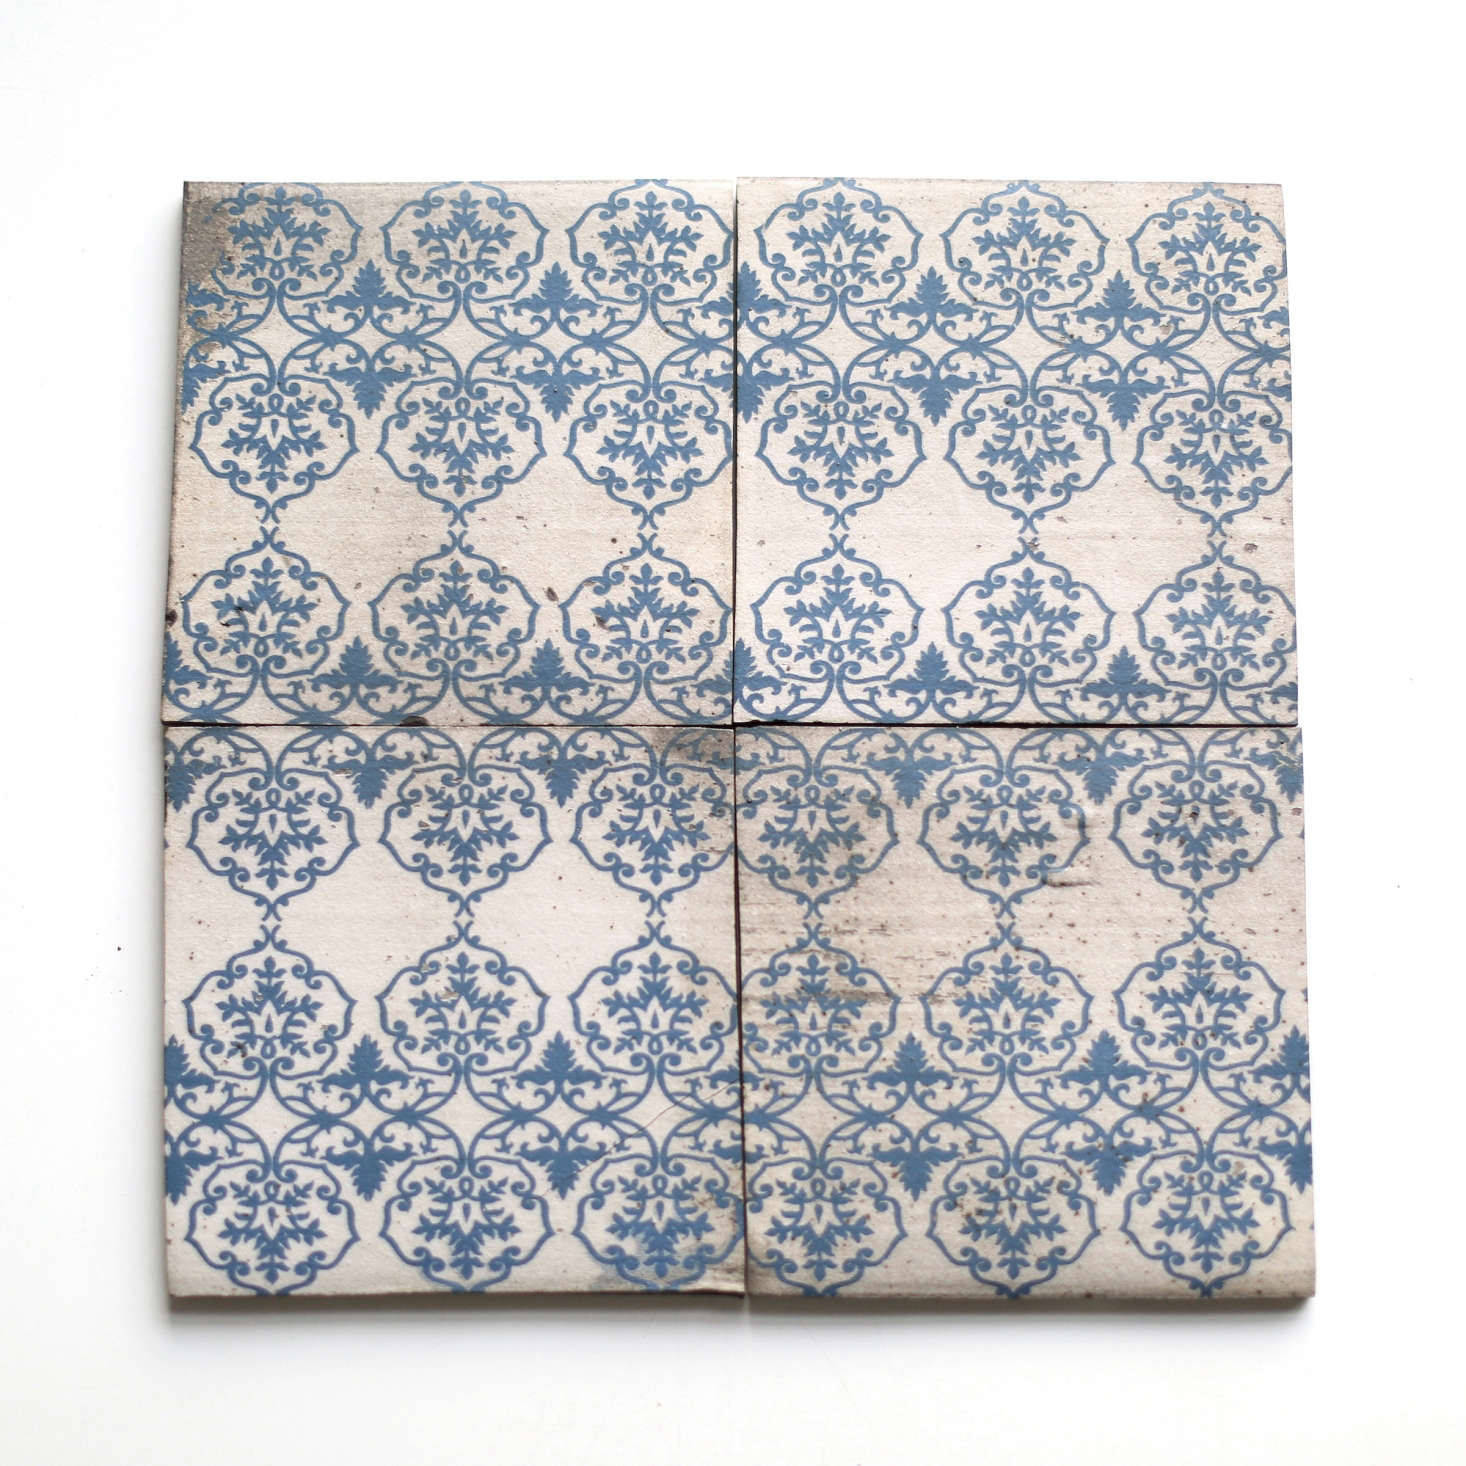 A New Blue Delft Tile Line from a California Artist - Remodelista